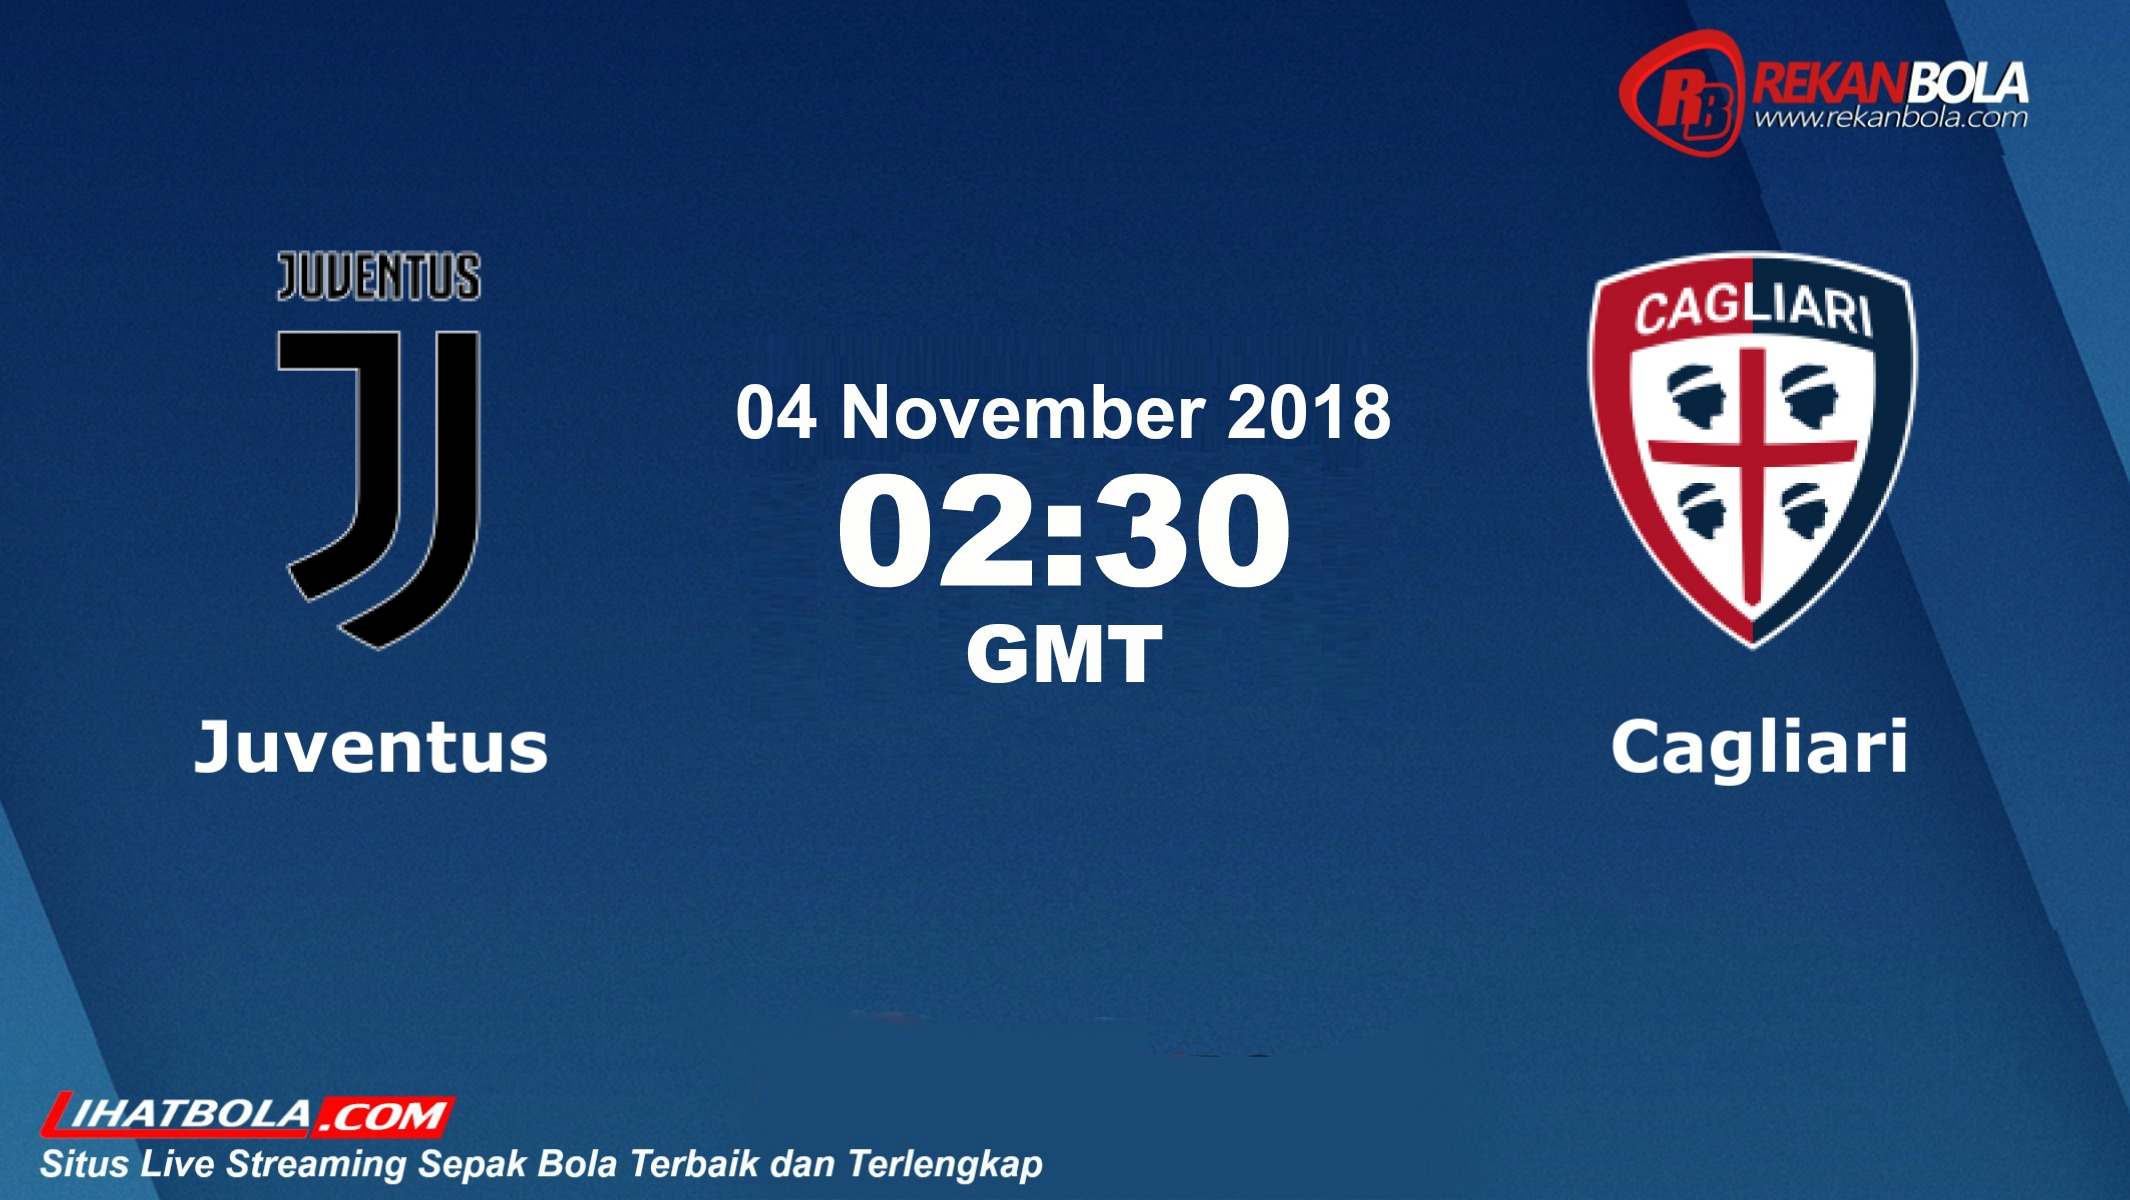 Nonton Siaran Live Streaming Juventus Vs Cagliari 04 November 2018